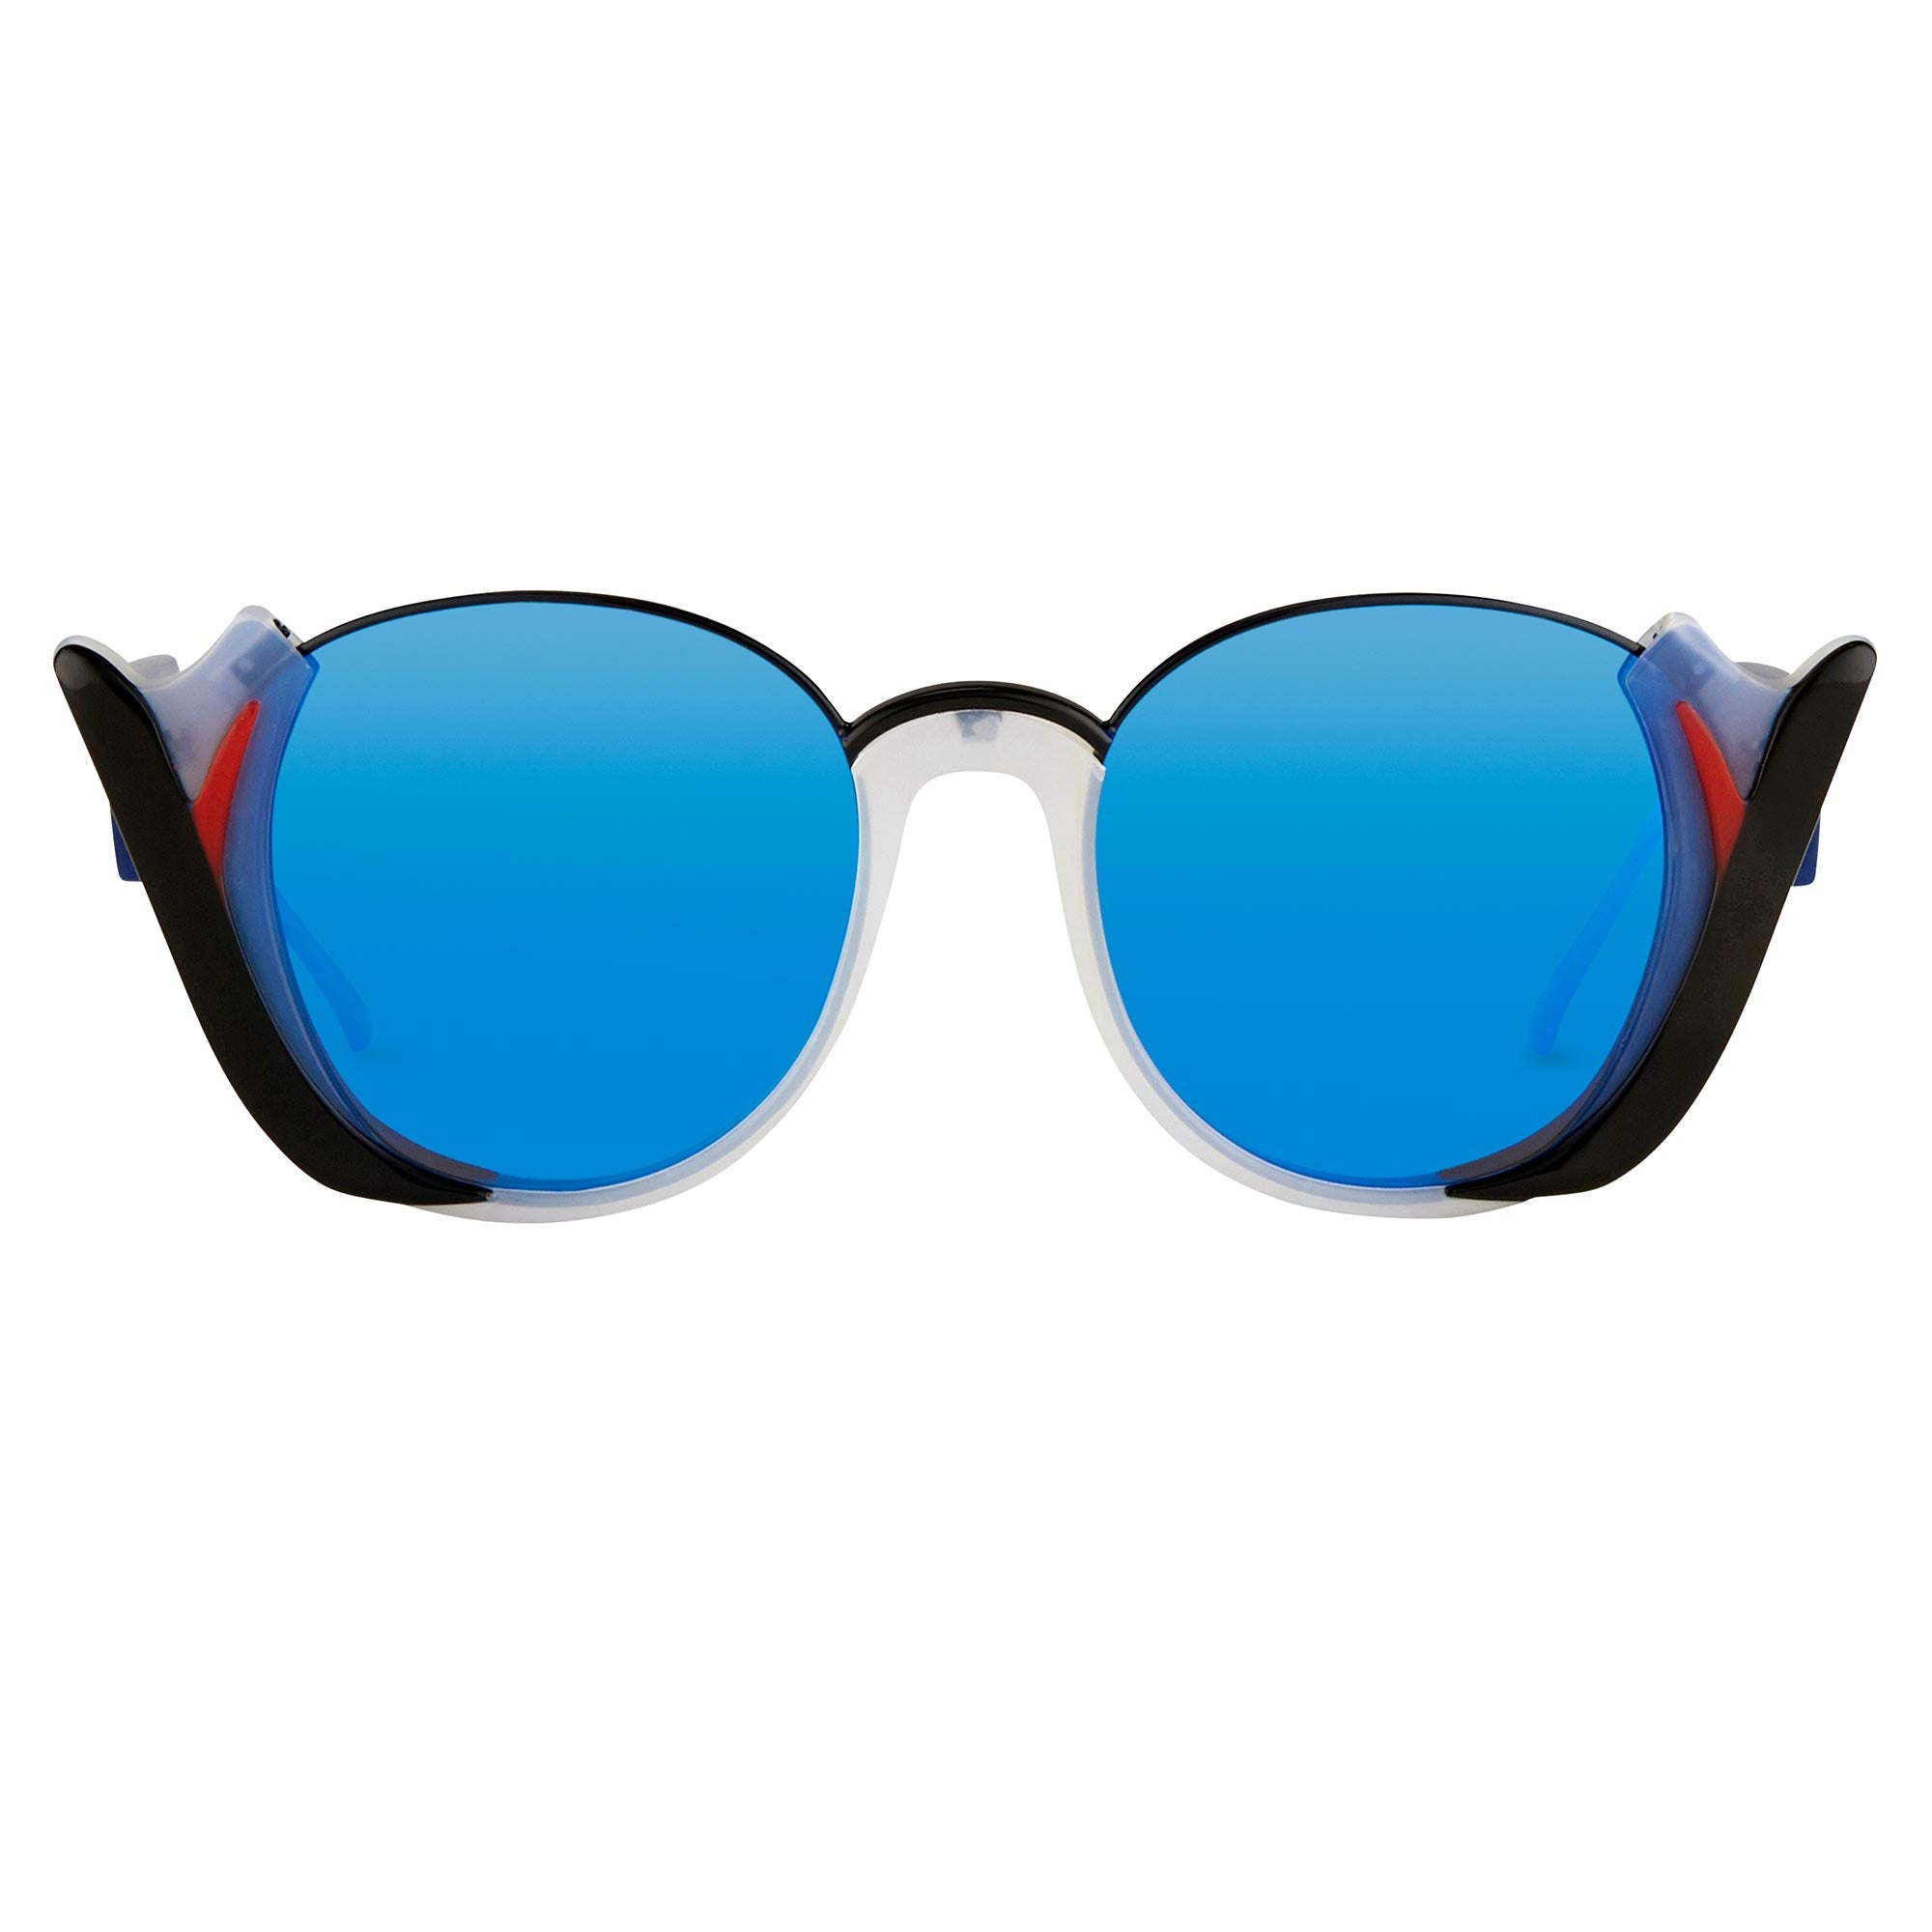 Prabal Gurung Sunglasses Round Black Smokey White With Blue Category 3 Graduated Mirror Lenses PG24C5SUN - Watches & Crystals